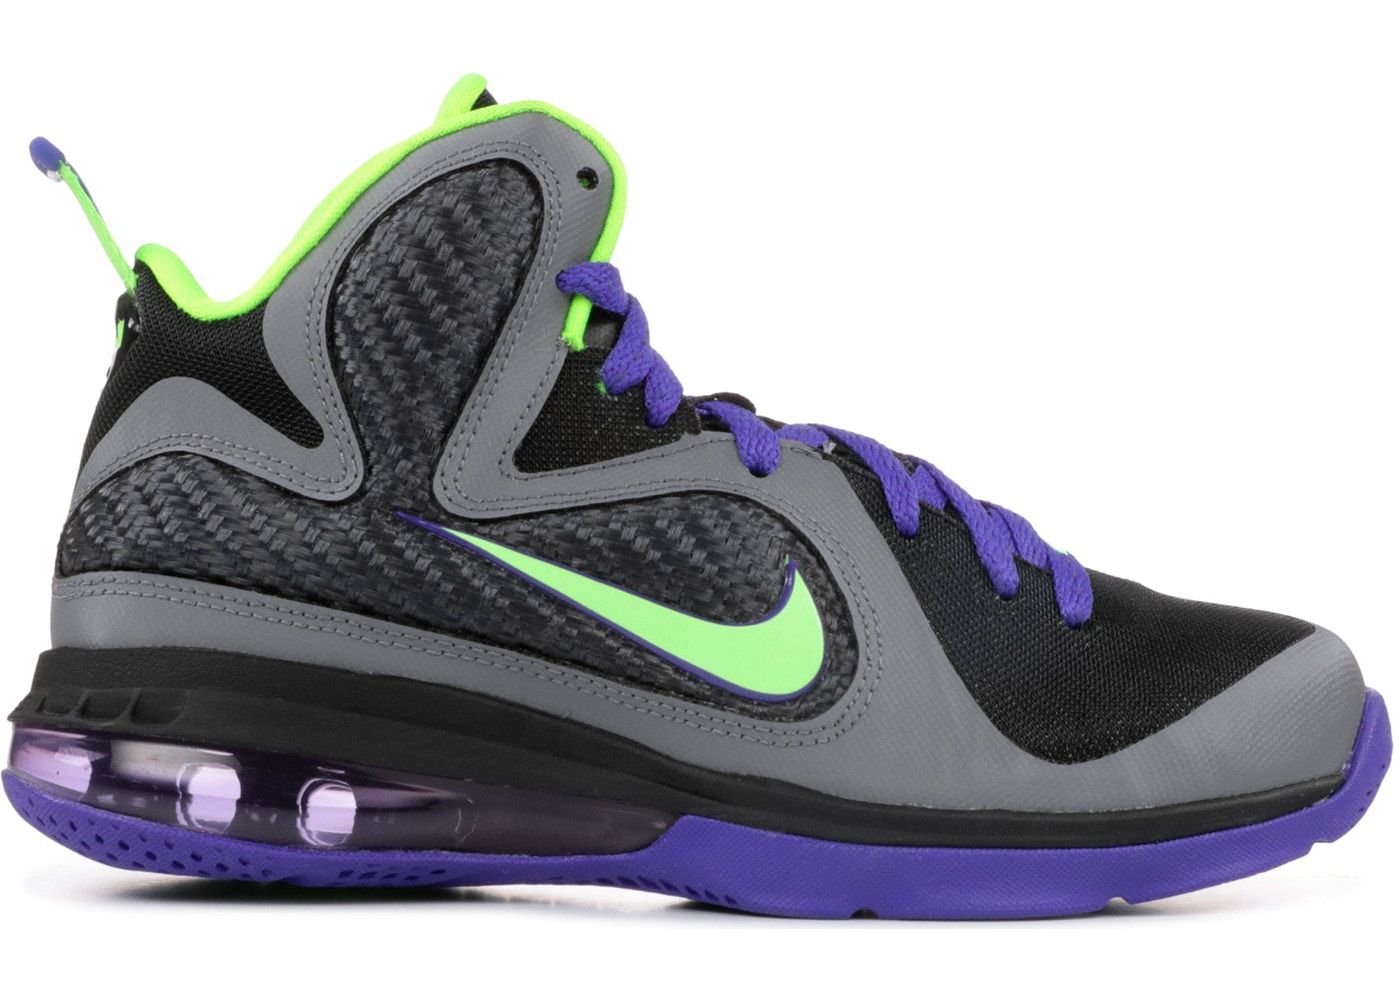 on sale 9b0ab a59fa Buy Nike LeBron 9 Shoes   Deadstock Sneakers